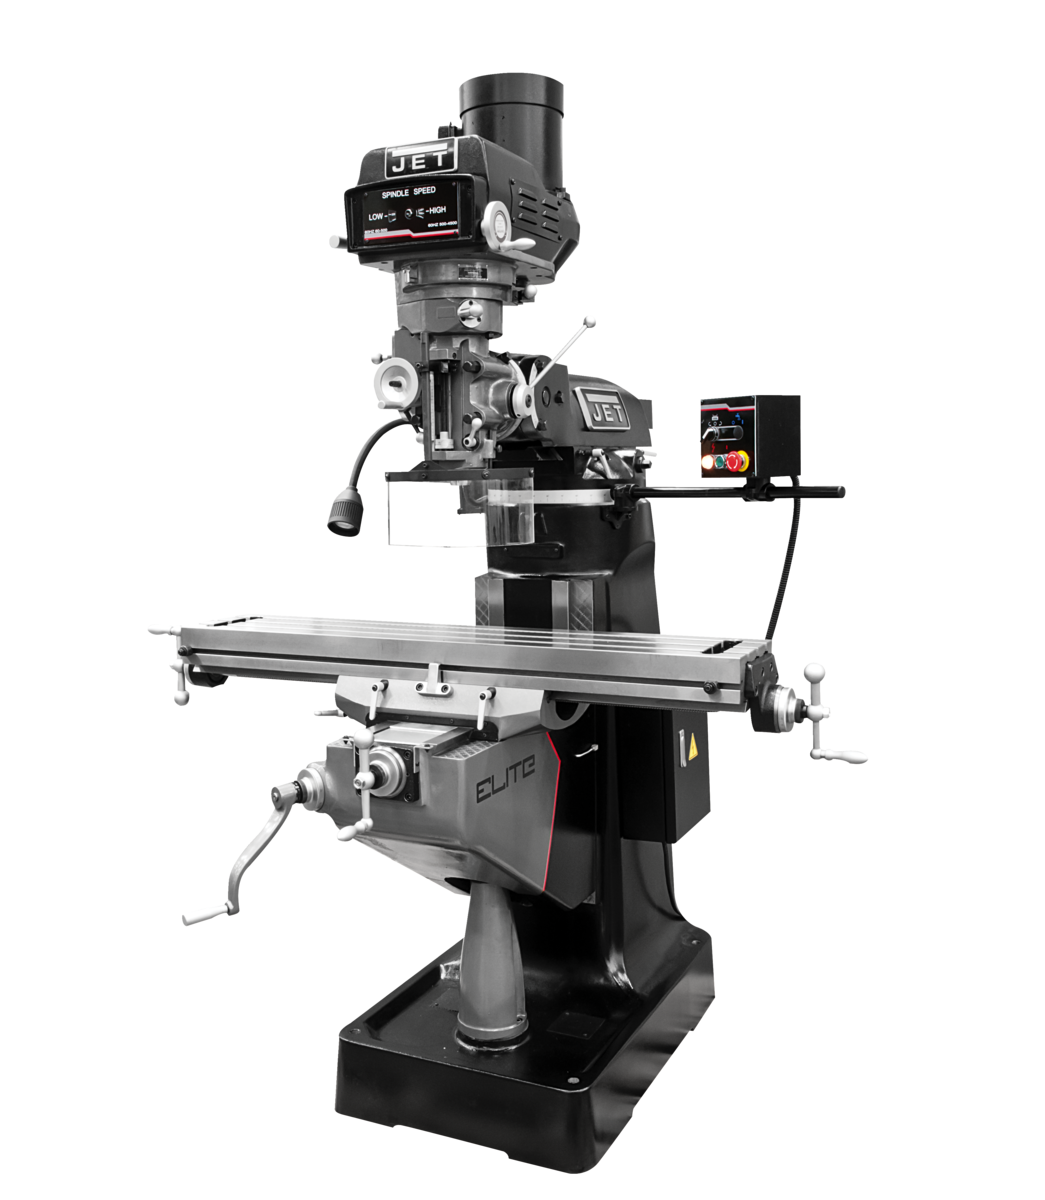 ETM-949 Mill with 3-Axis Newall DP700 (Knee) DRO and Servo X, Y-Axis Powerfeeds